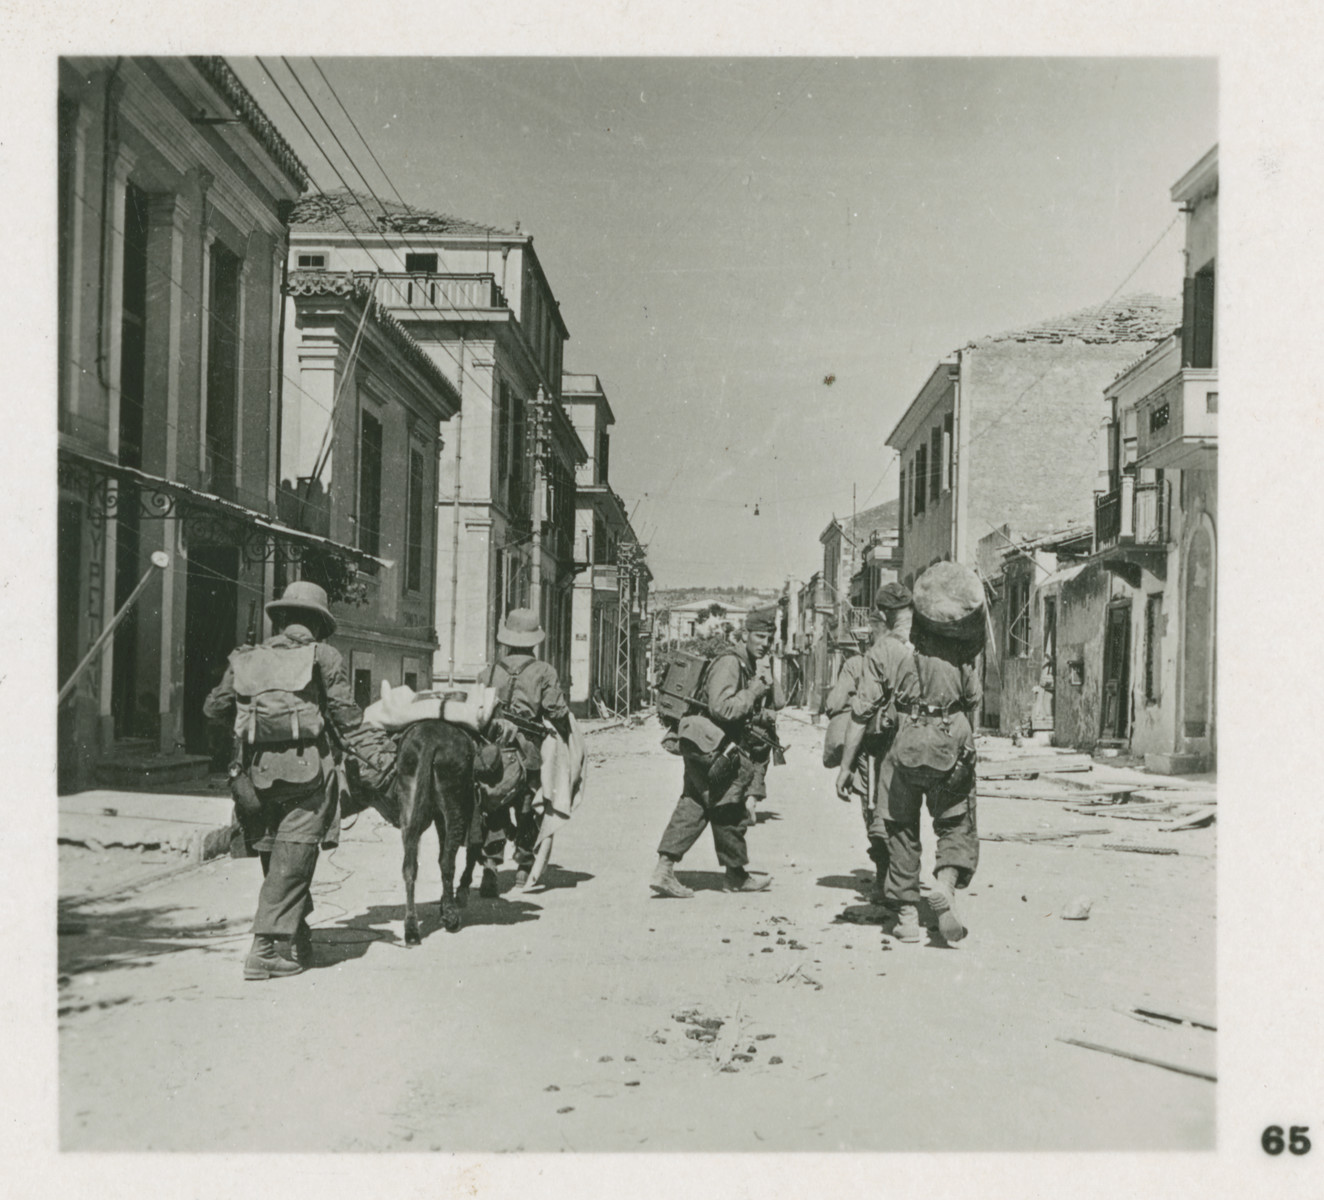 One side of a stereograph of Nazi paratroopers invading Chania, Crete.  Original caption in German reads: Fallschirmjäger in den Strassen der kretischen Hauptstadt Chanea unmittelbar nach deren Einnahme